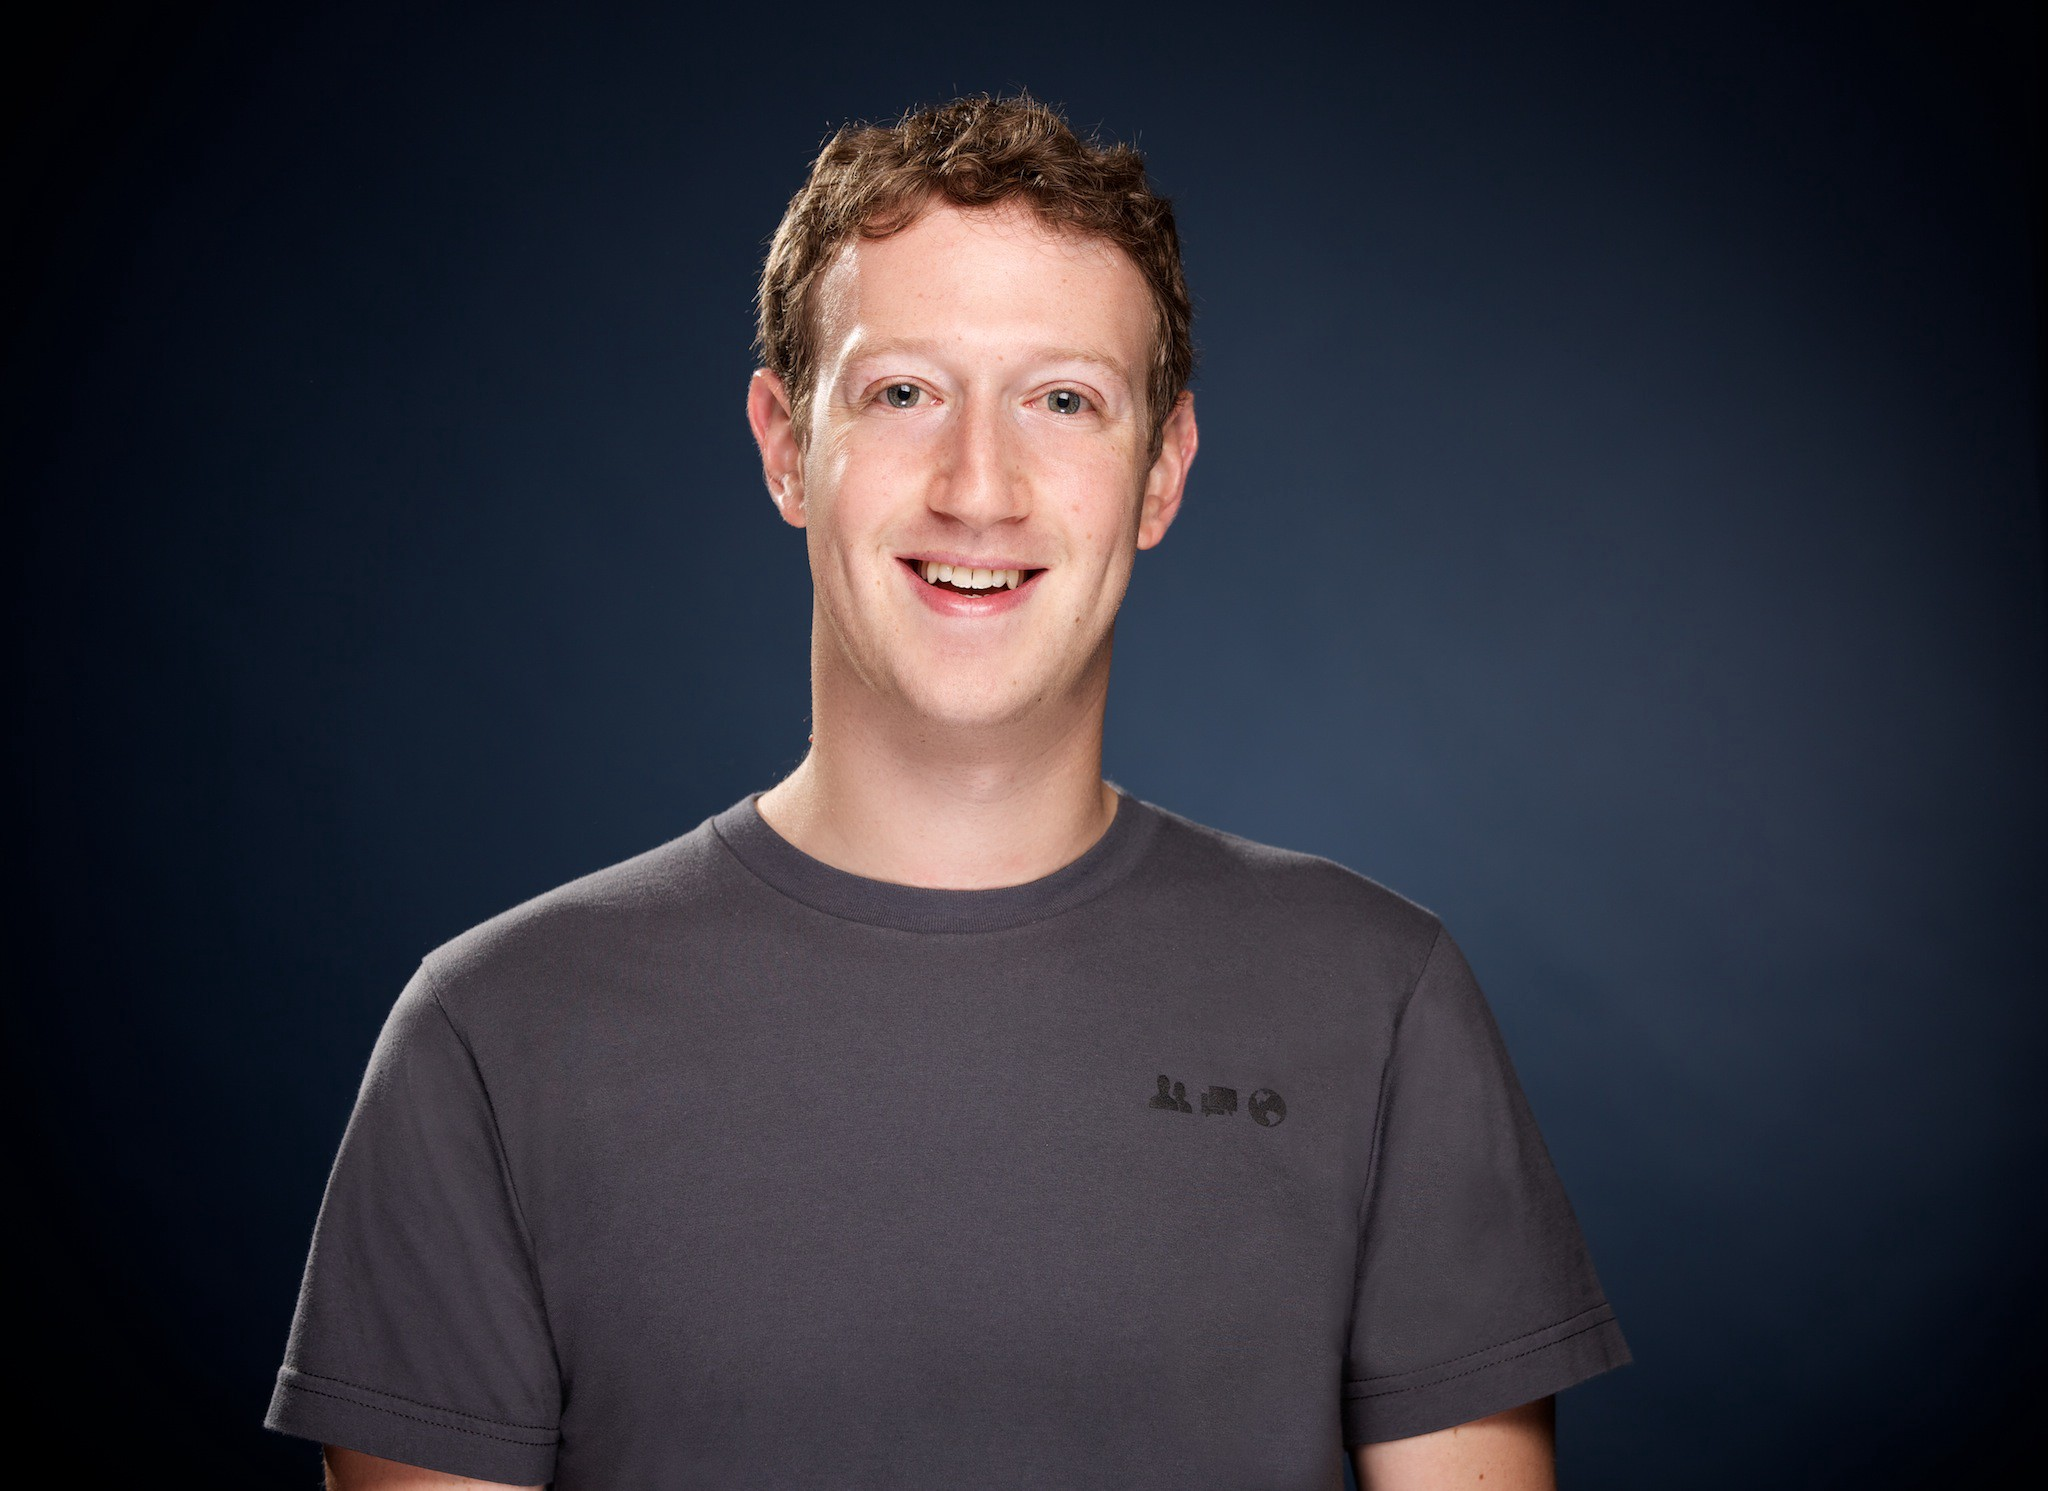 23 Books Facebook CEO Mark Zuckerberg Recommends You Read